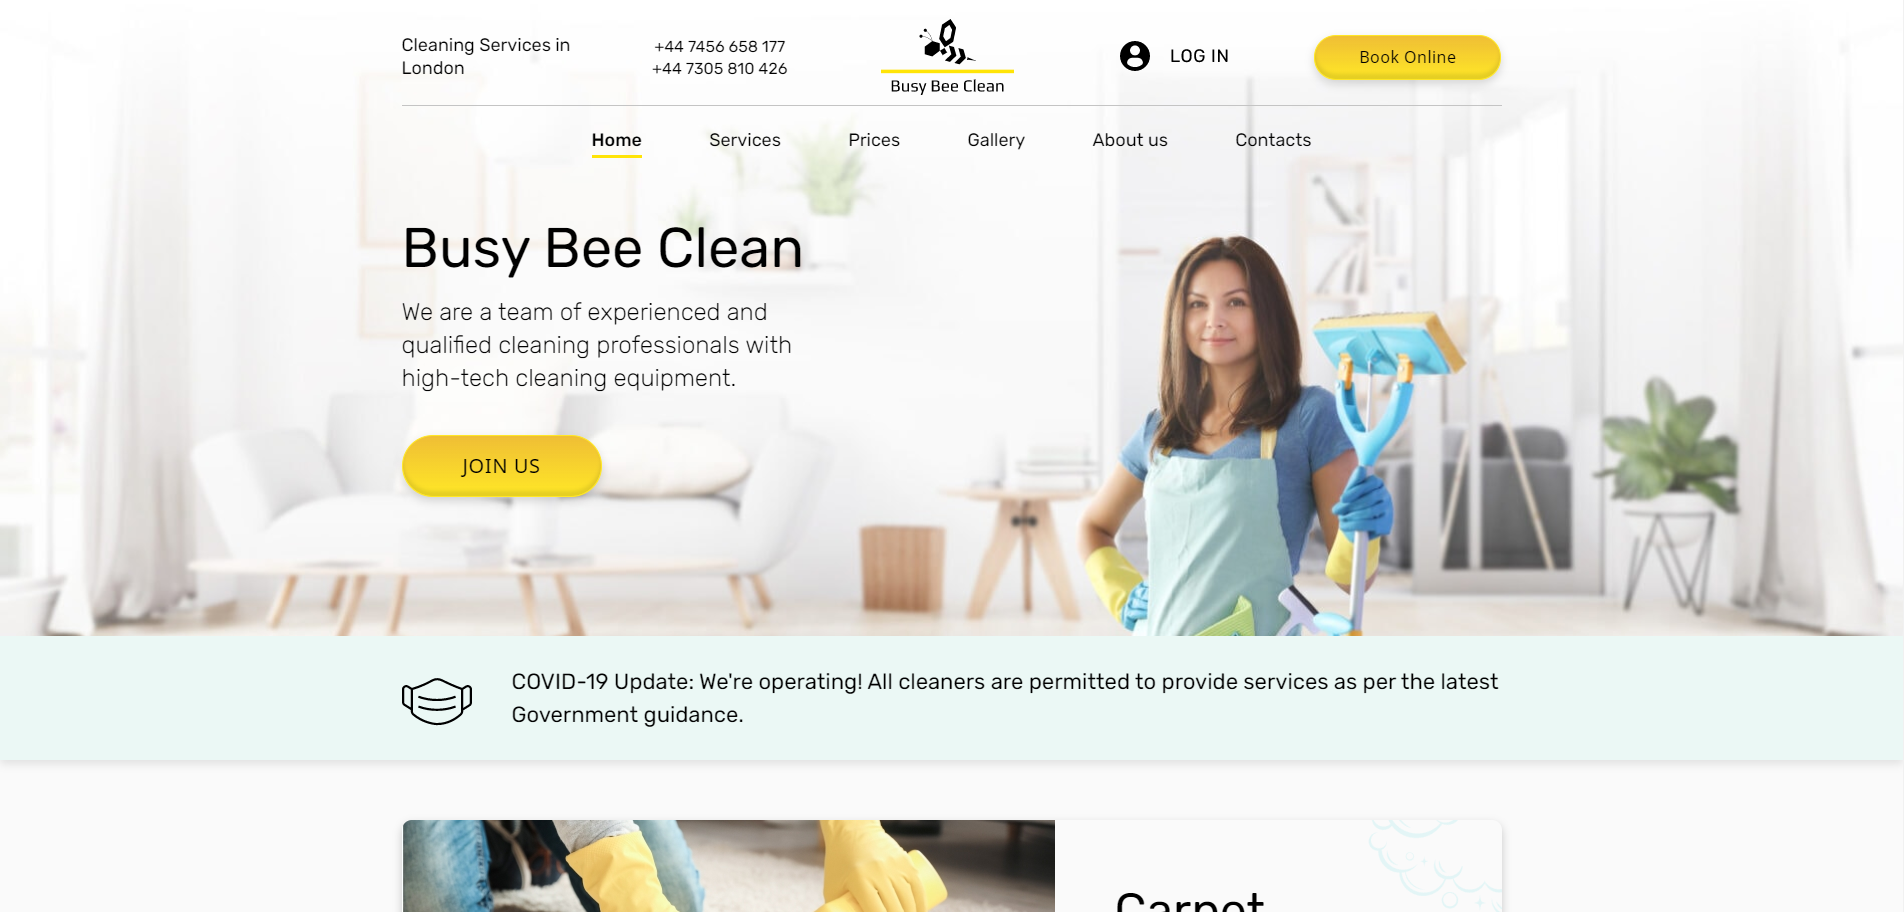 Busy Bee Clean